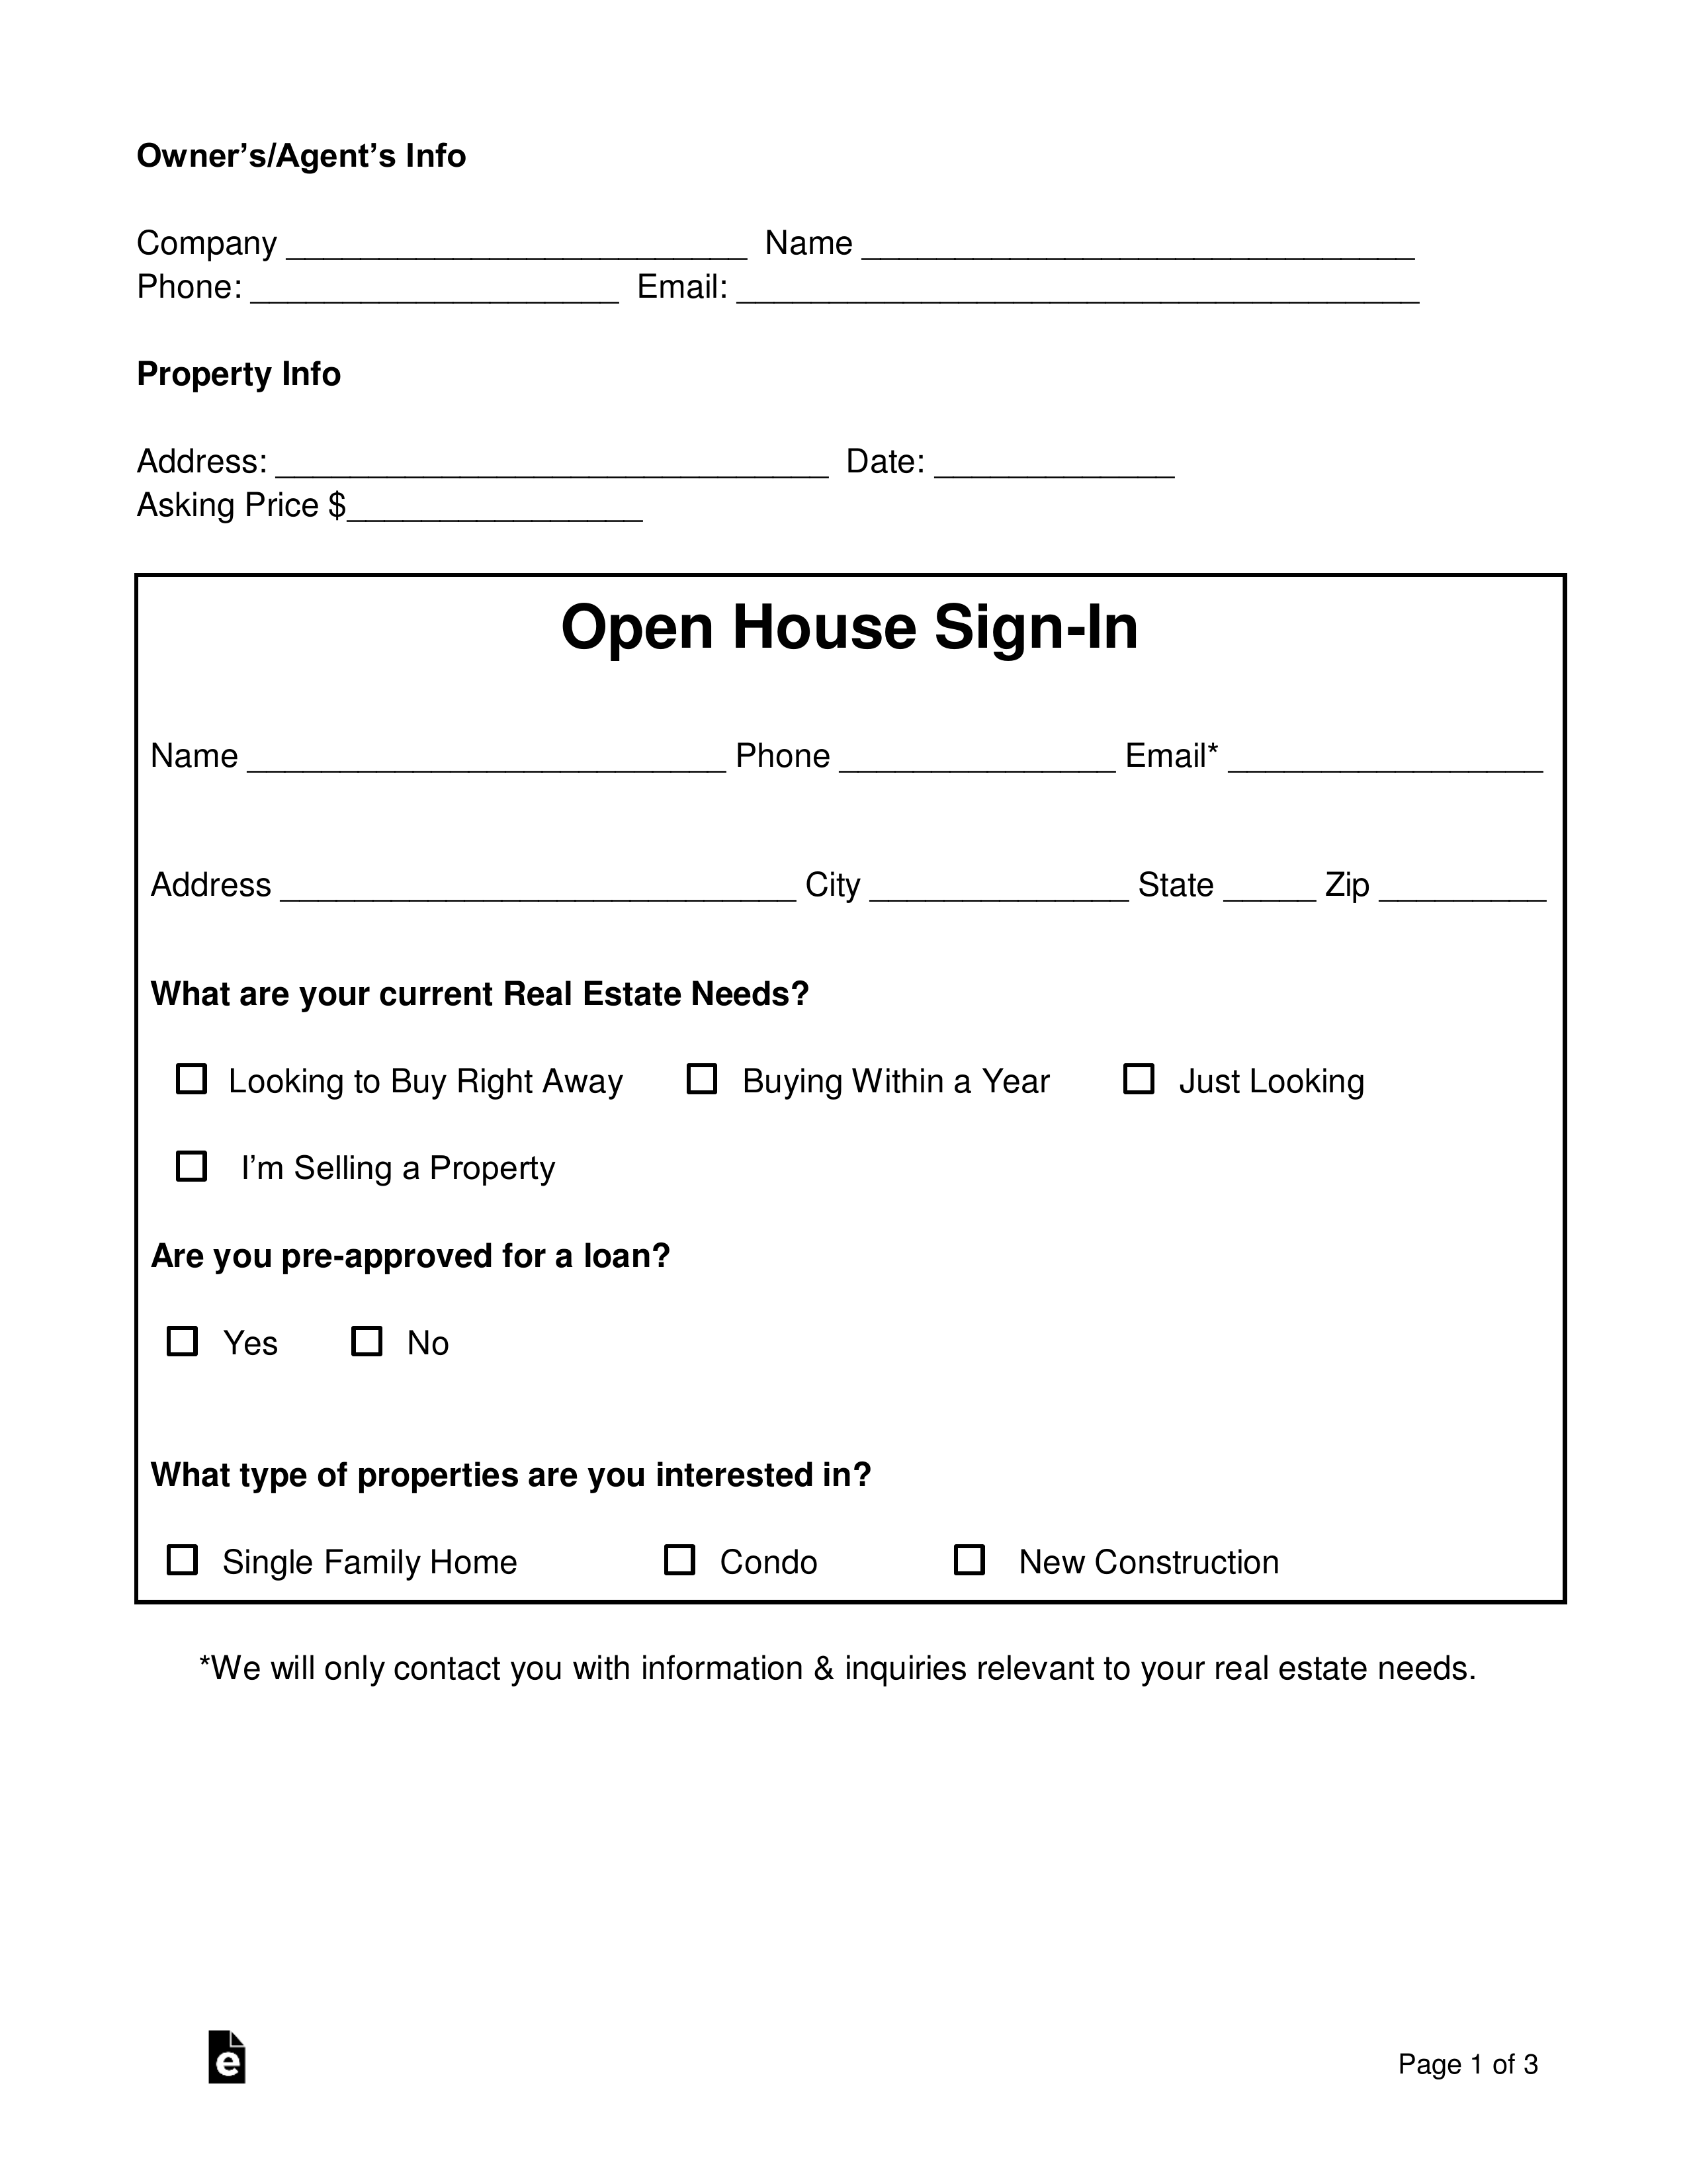 It's just an image of Handy Real Estate Open House Sign in Sheet Printable